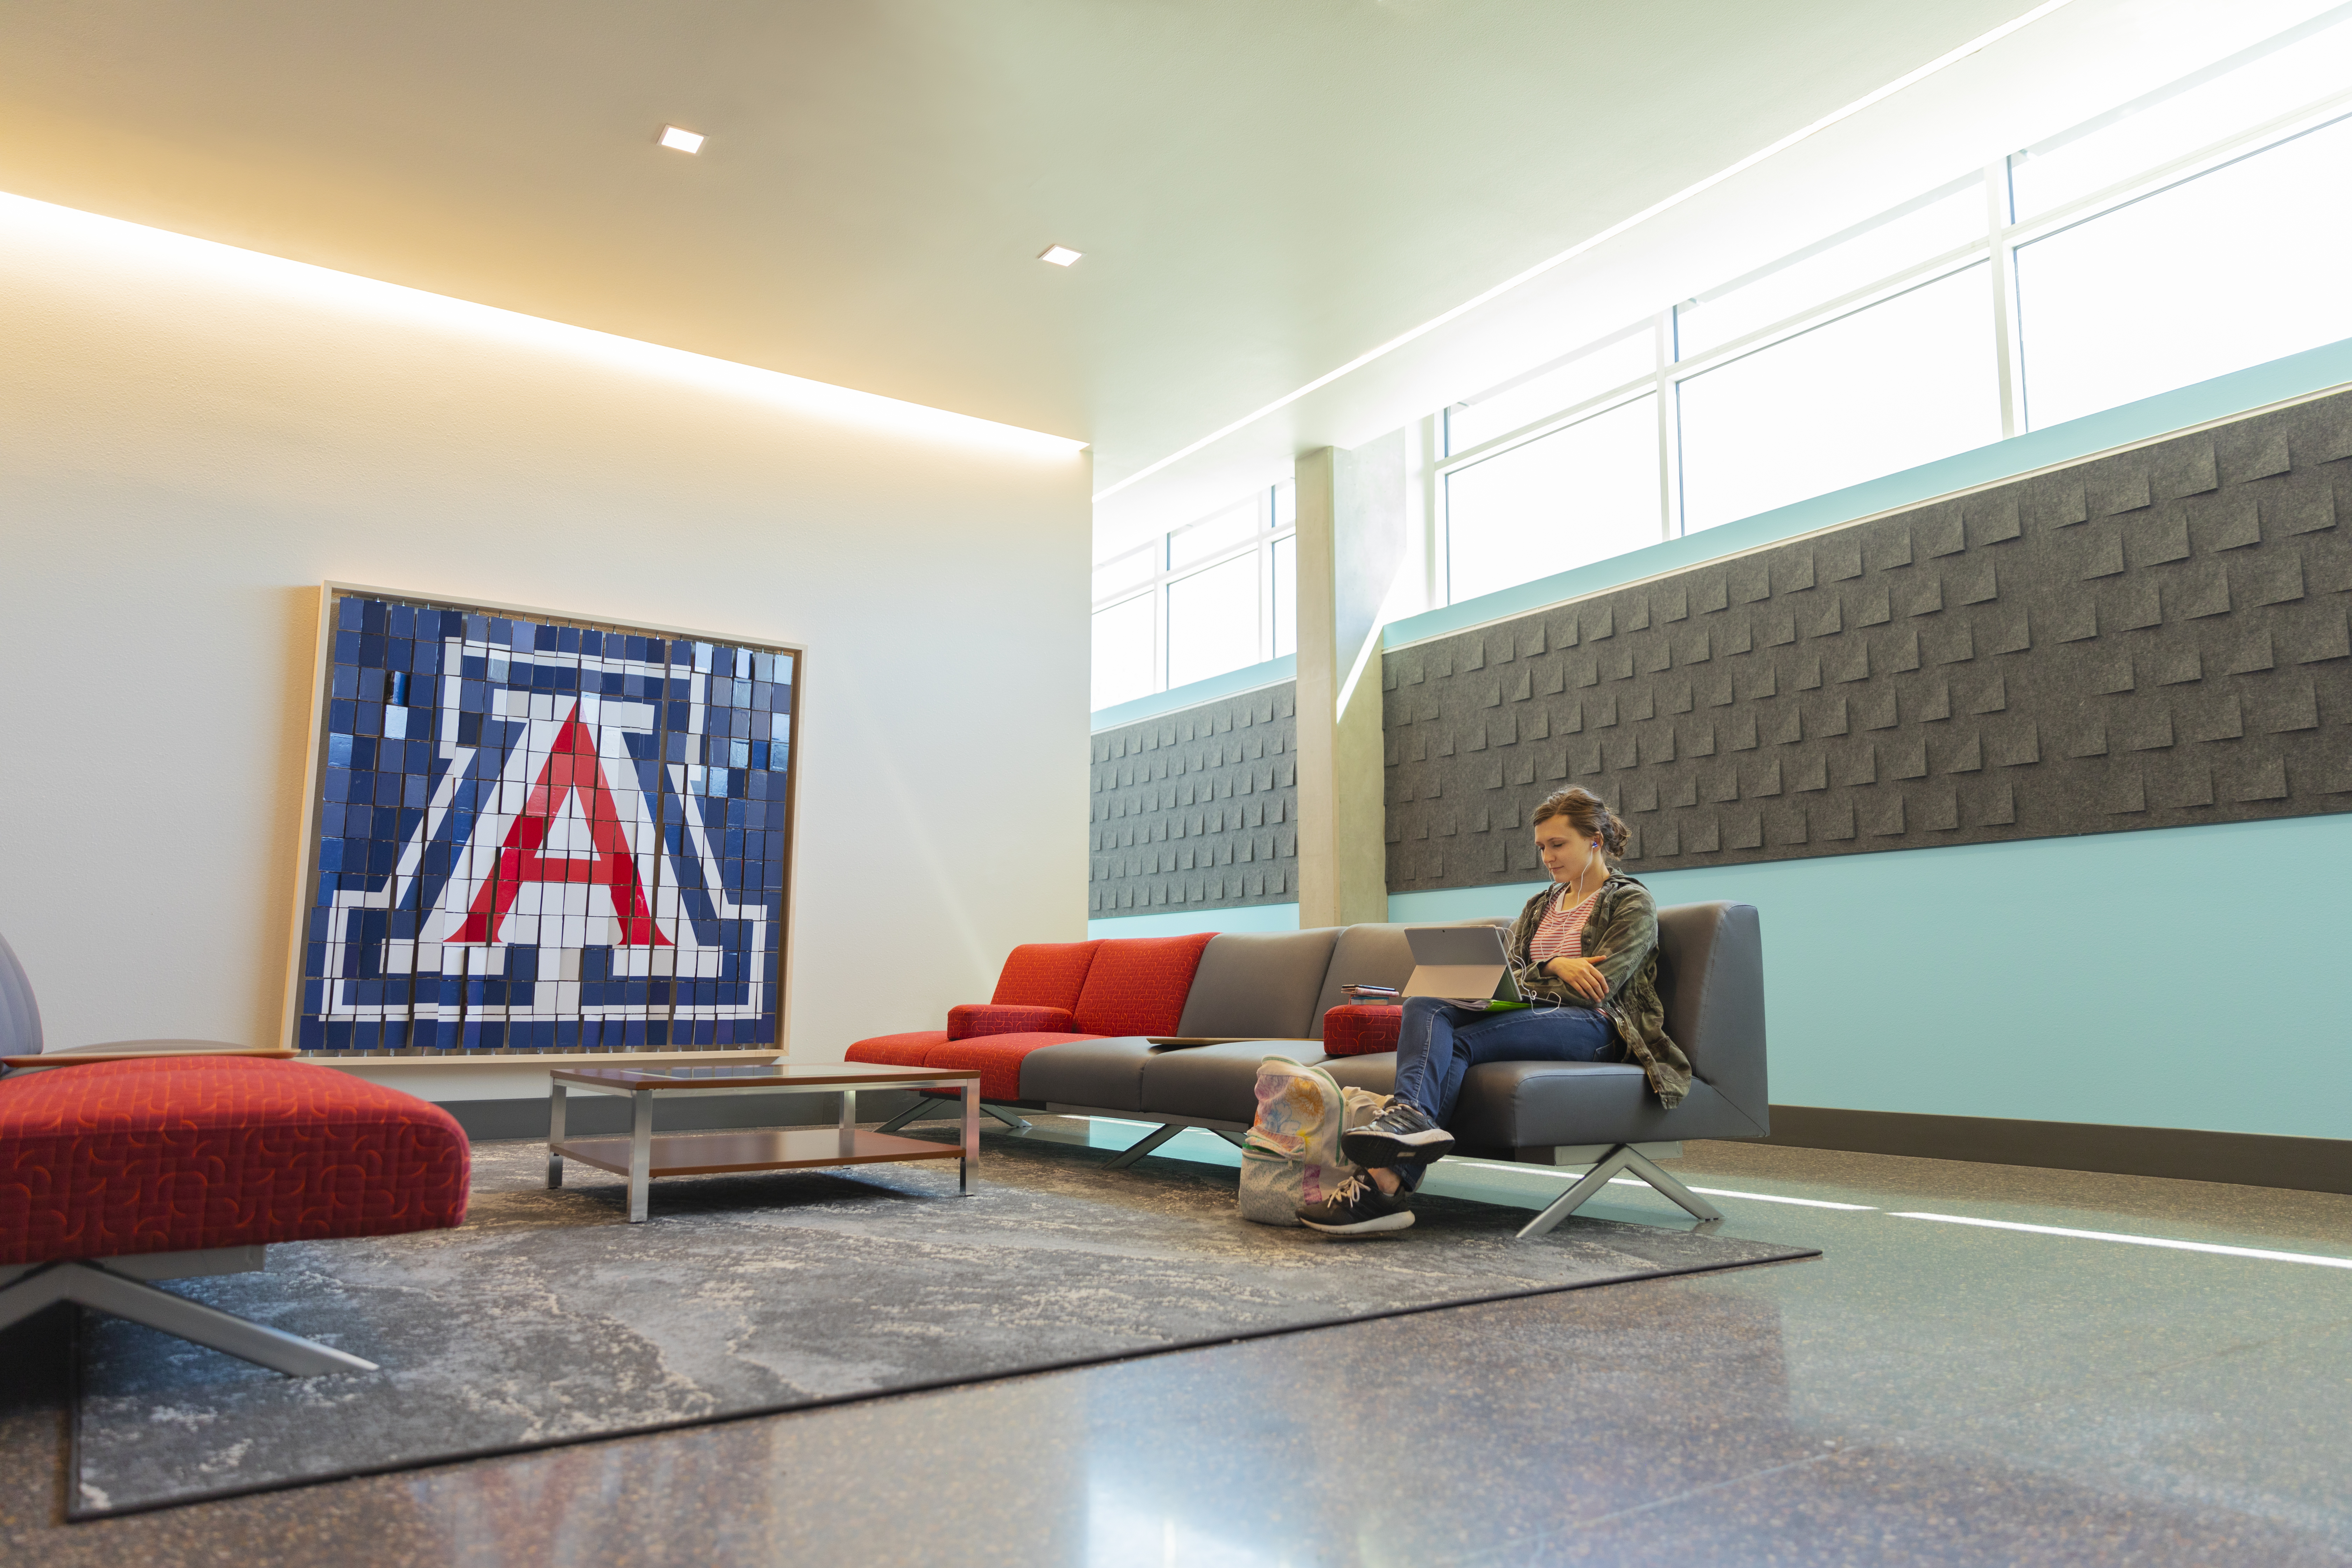 Lounge outside Honors Offices with student on couch